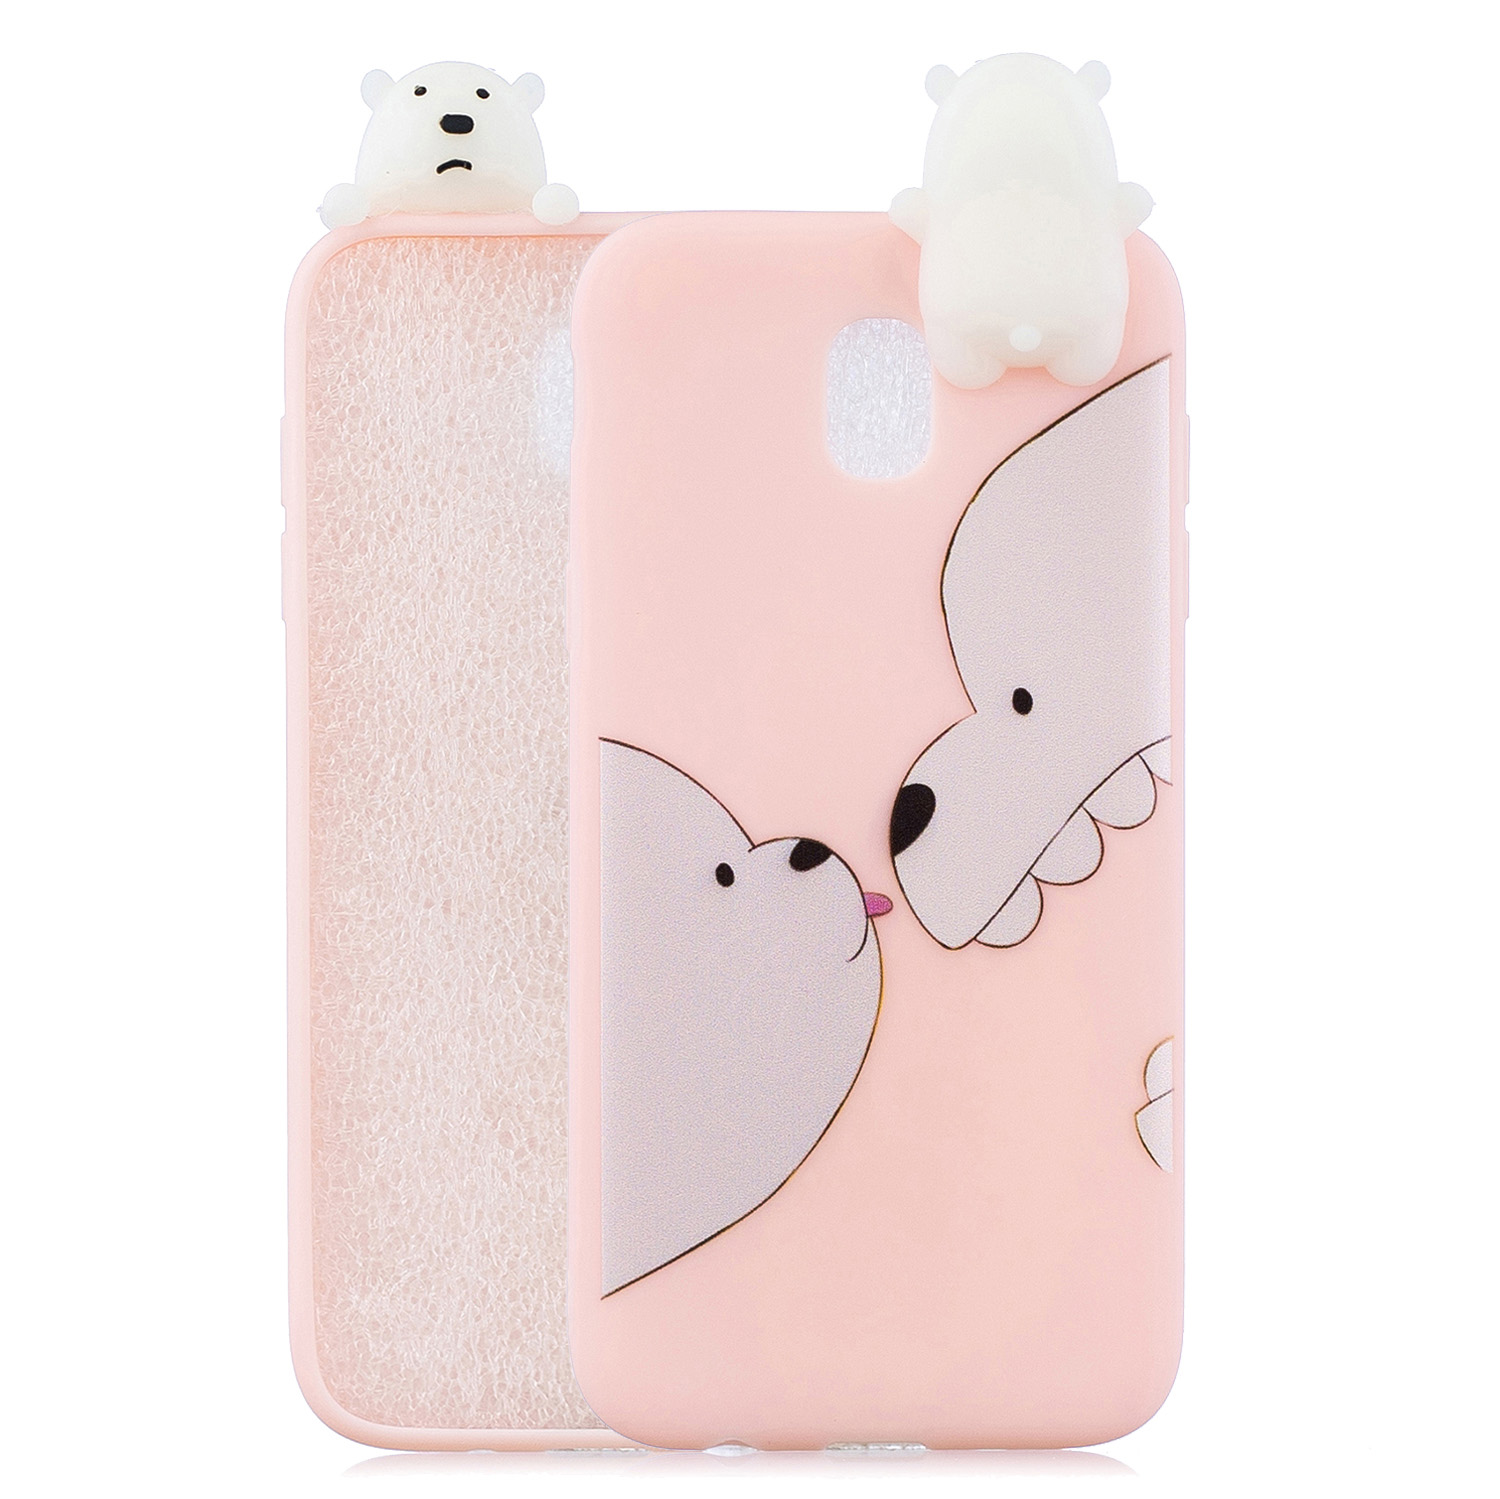 For Redmi 8A 3D Cartoon Painting Back Cover Soft TPU Mobile Phone Case Shell Big white bear